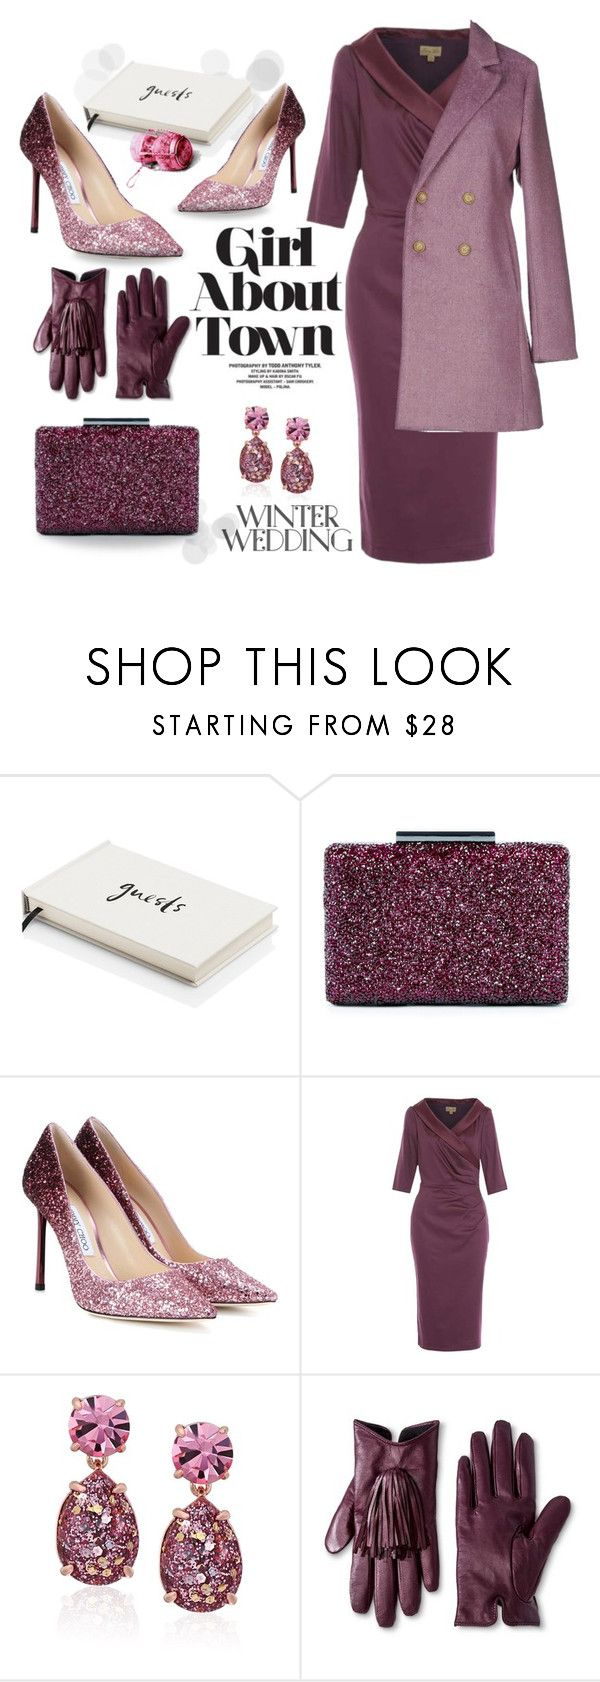 """Winter Wedding"" by tjclay3 ❤ liked on Polyvore featuring Kate Spade, Sole Society, Jimmy Choo, Merona, Sarah Jackson and winterwedding"